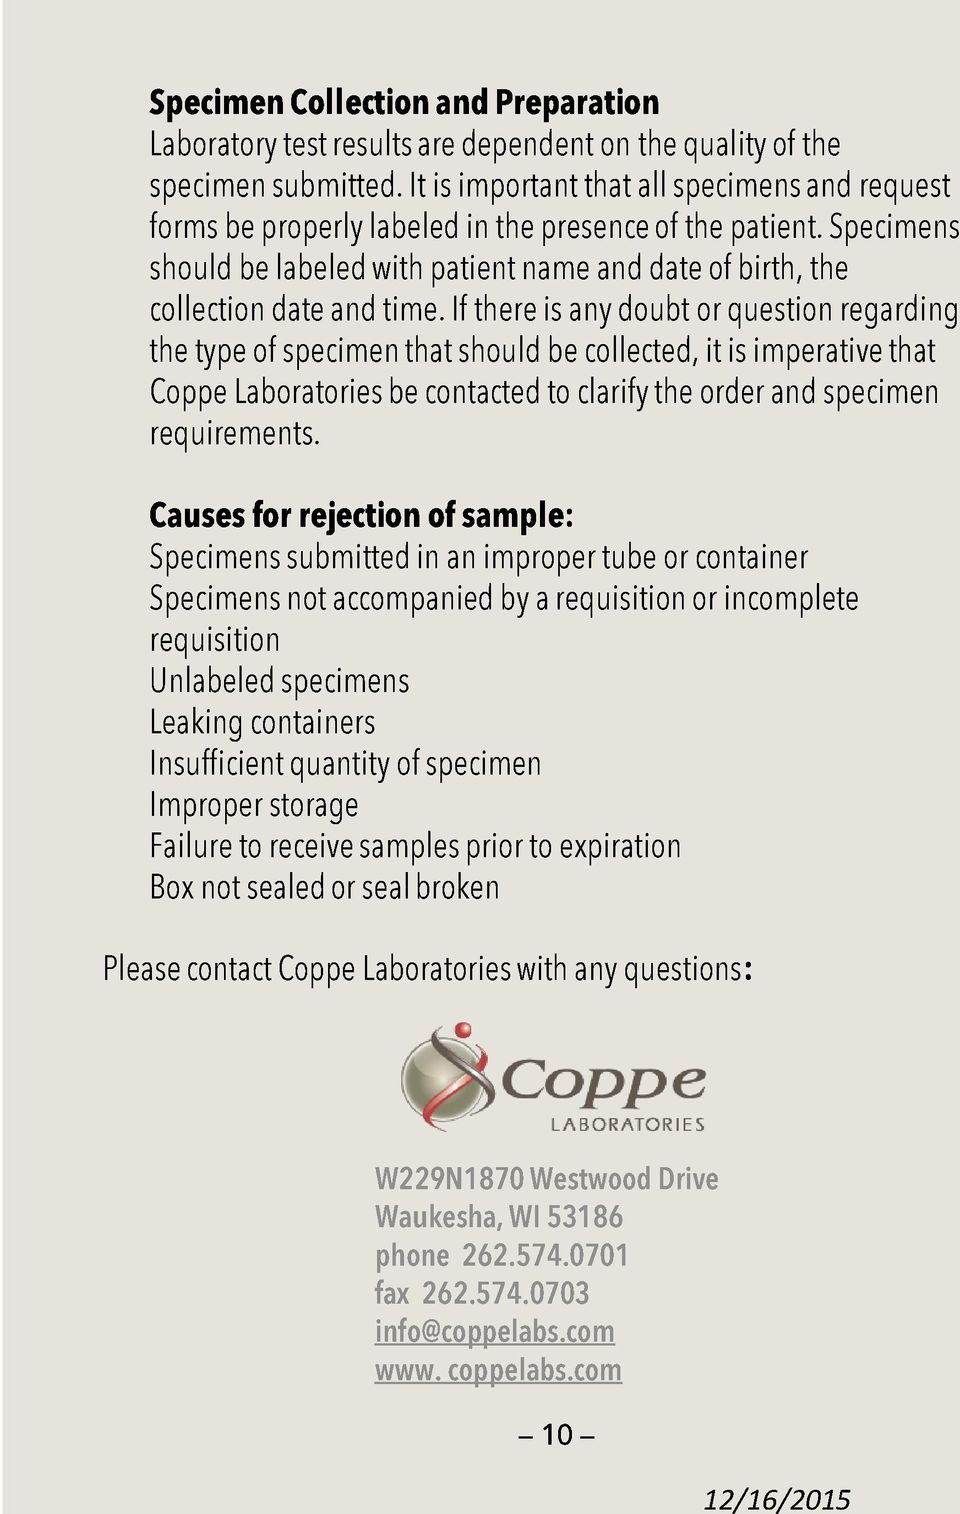 If there is any doubt or question regarding the type of specimen that should be collected, it is imperative that Coppe Laboratories be contacted to clarify the order and specimen requirements.